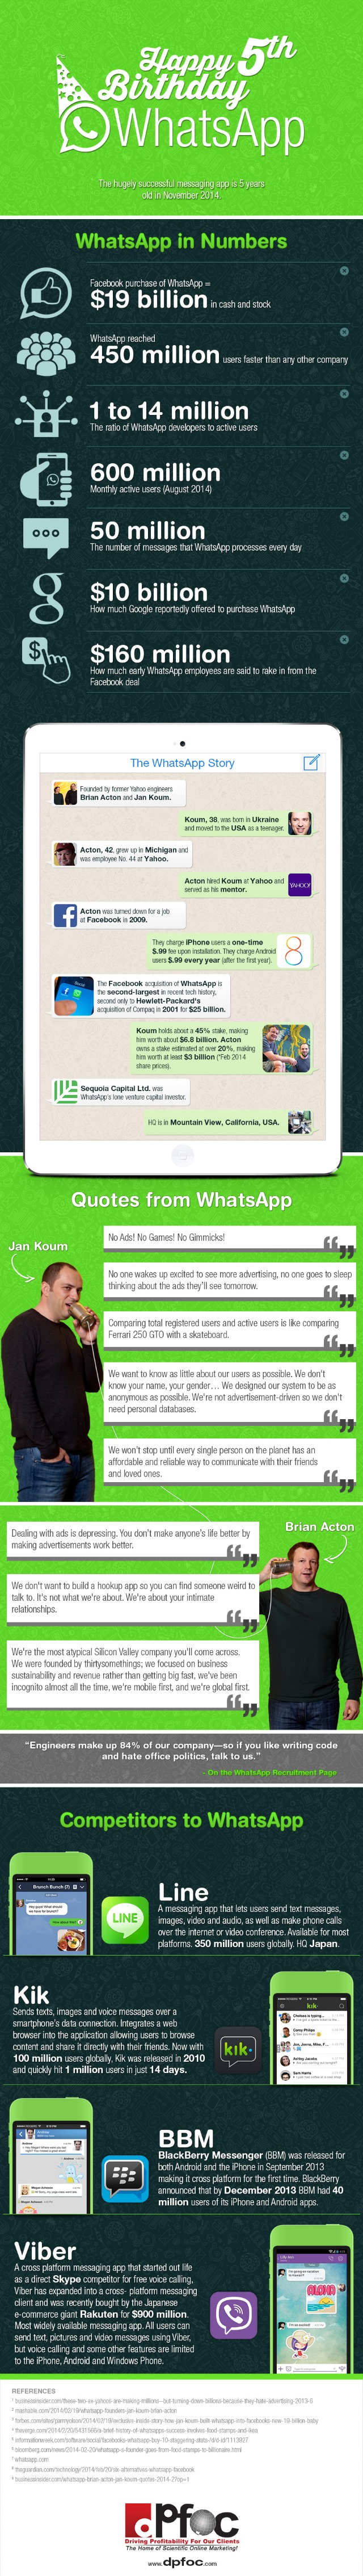 WhatsApp adds read receipts as messaging app celebrates fifth birthday [infographic]